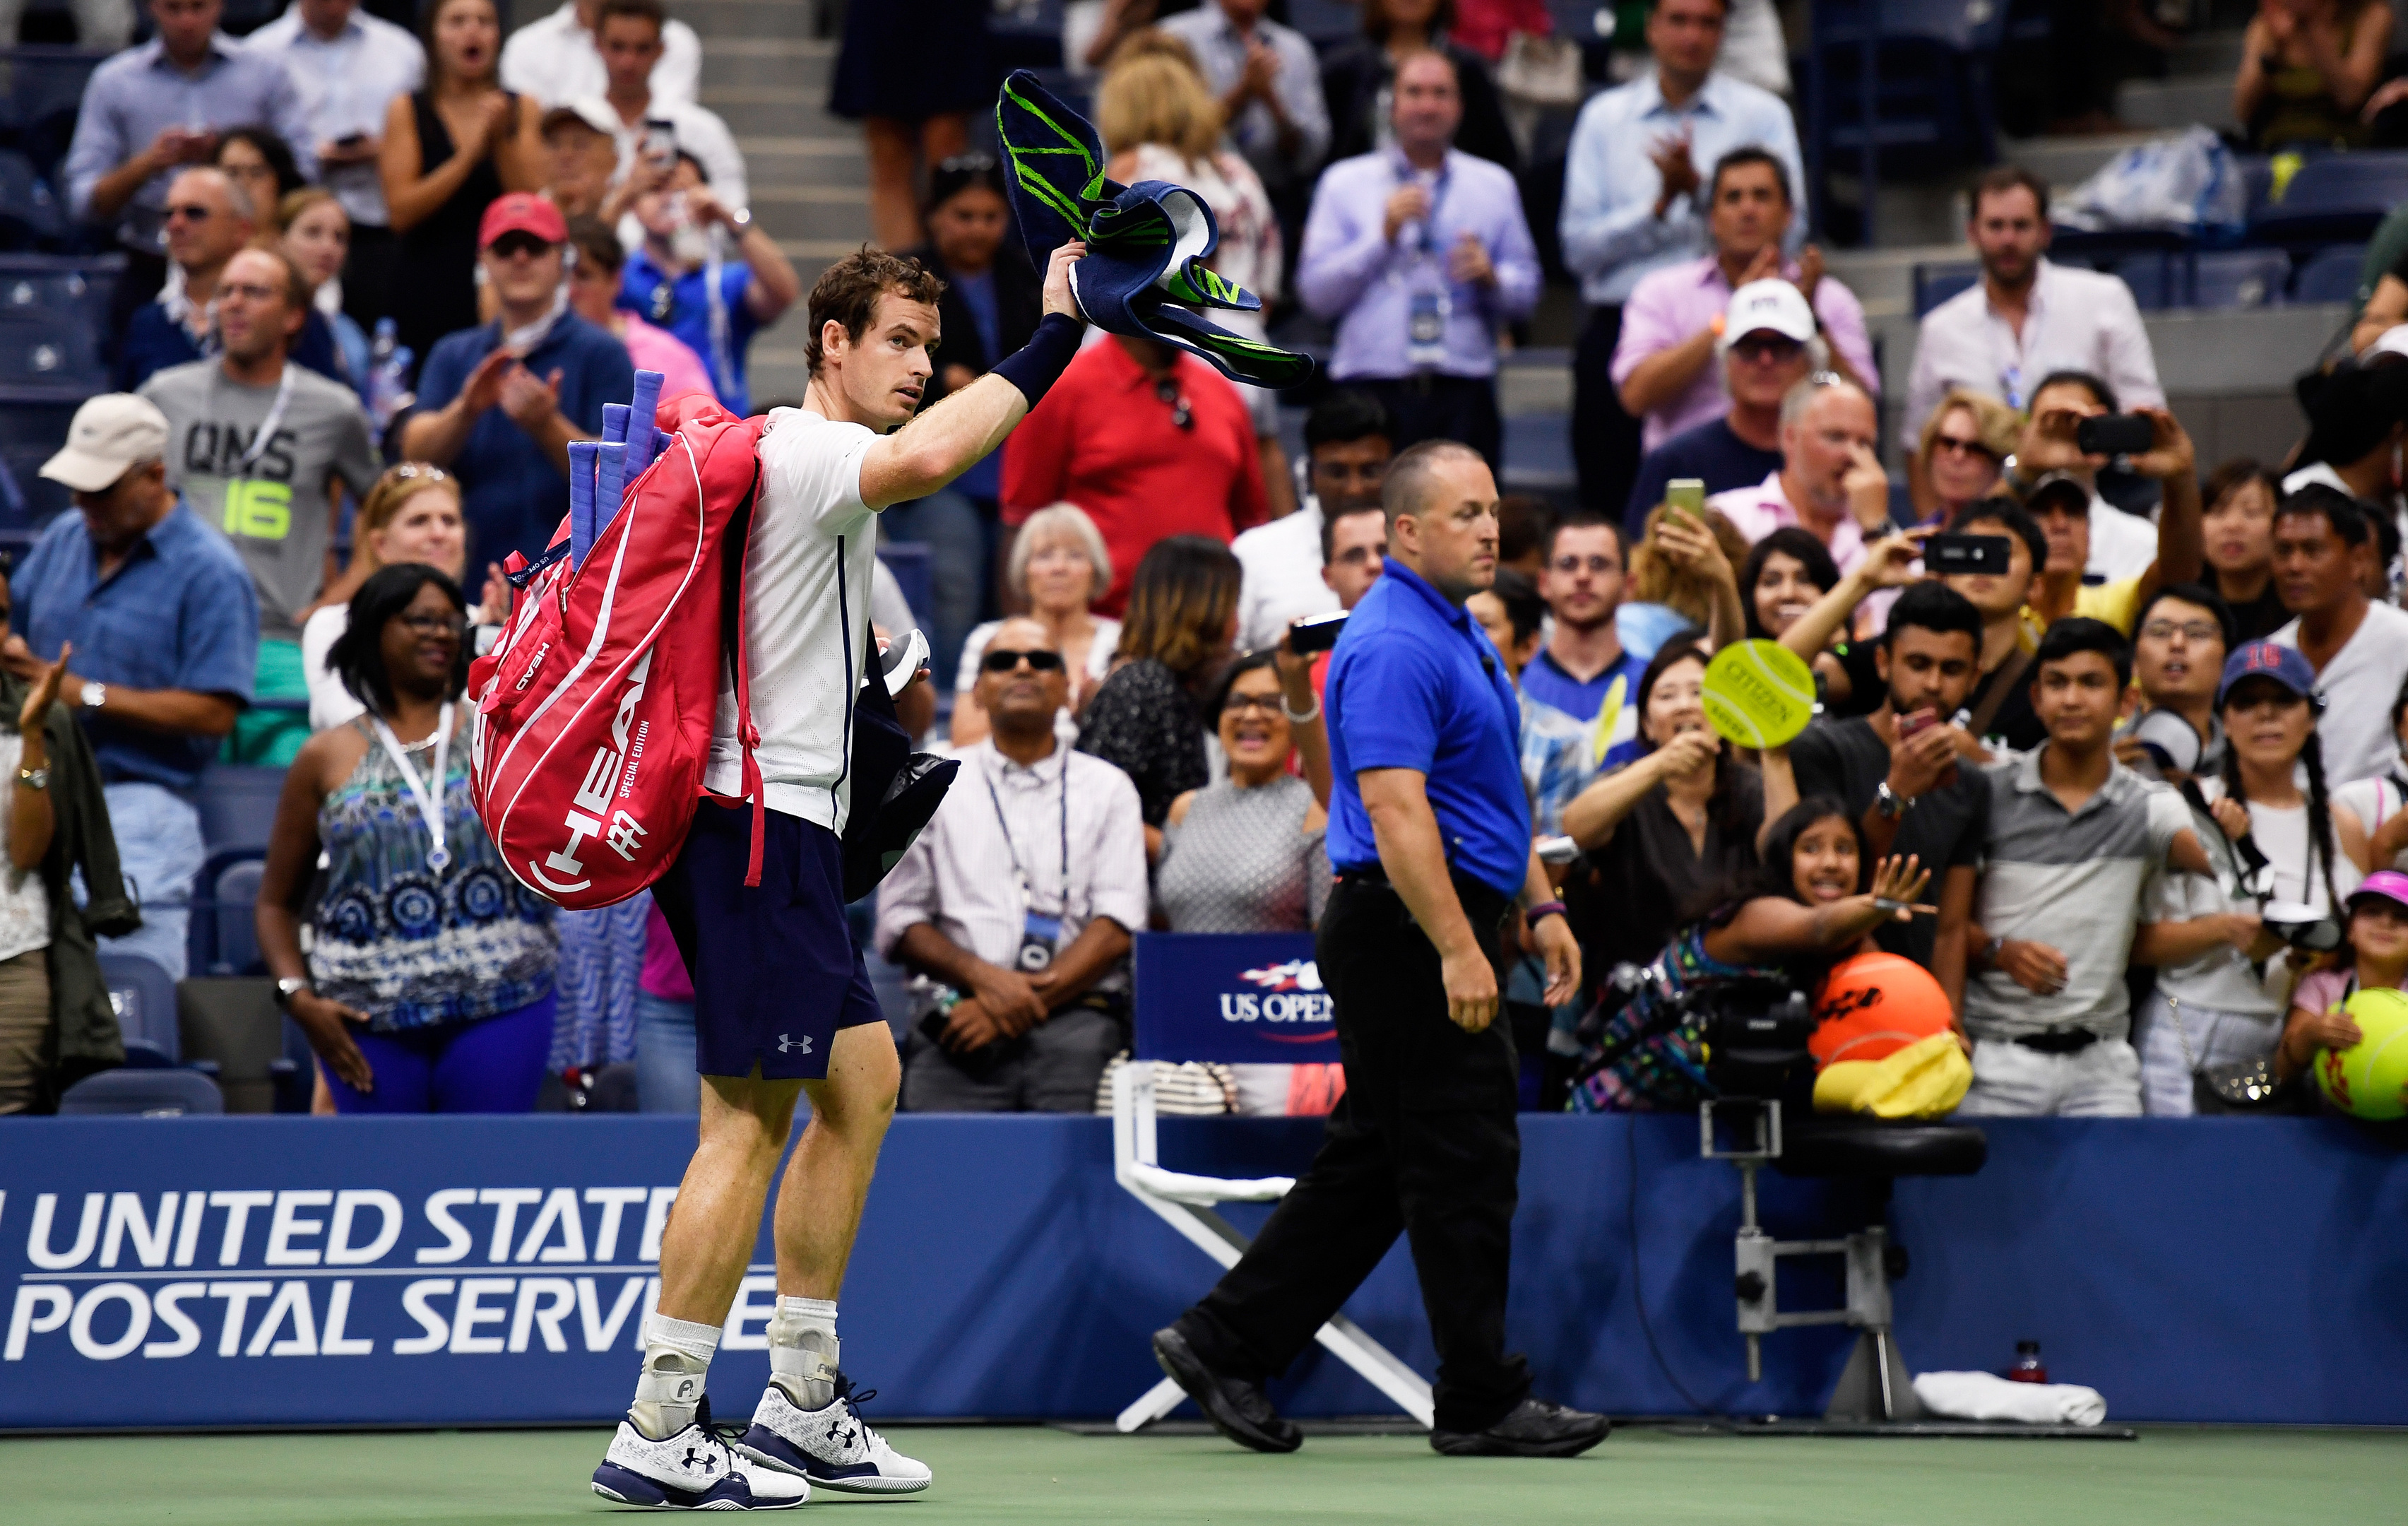 Andy Murray leaves the Flushing Meadow court after his defeat.